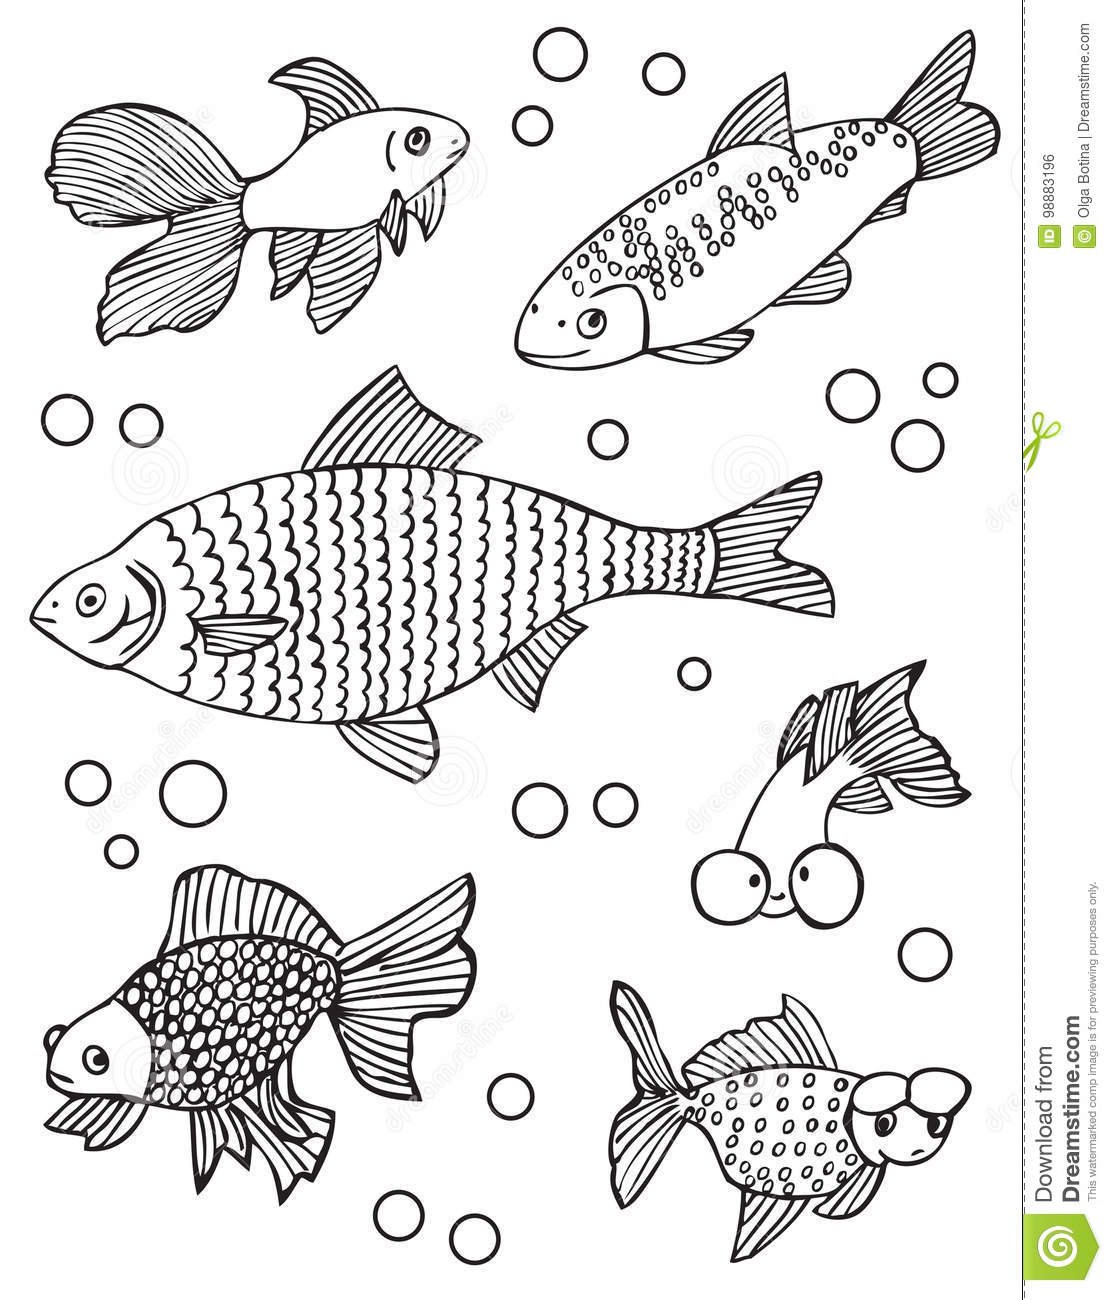 Aquarium Fish And Other Stock Vector Illustration Of Drawing 98883196